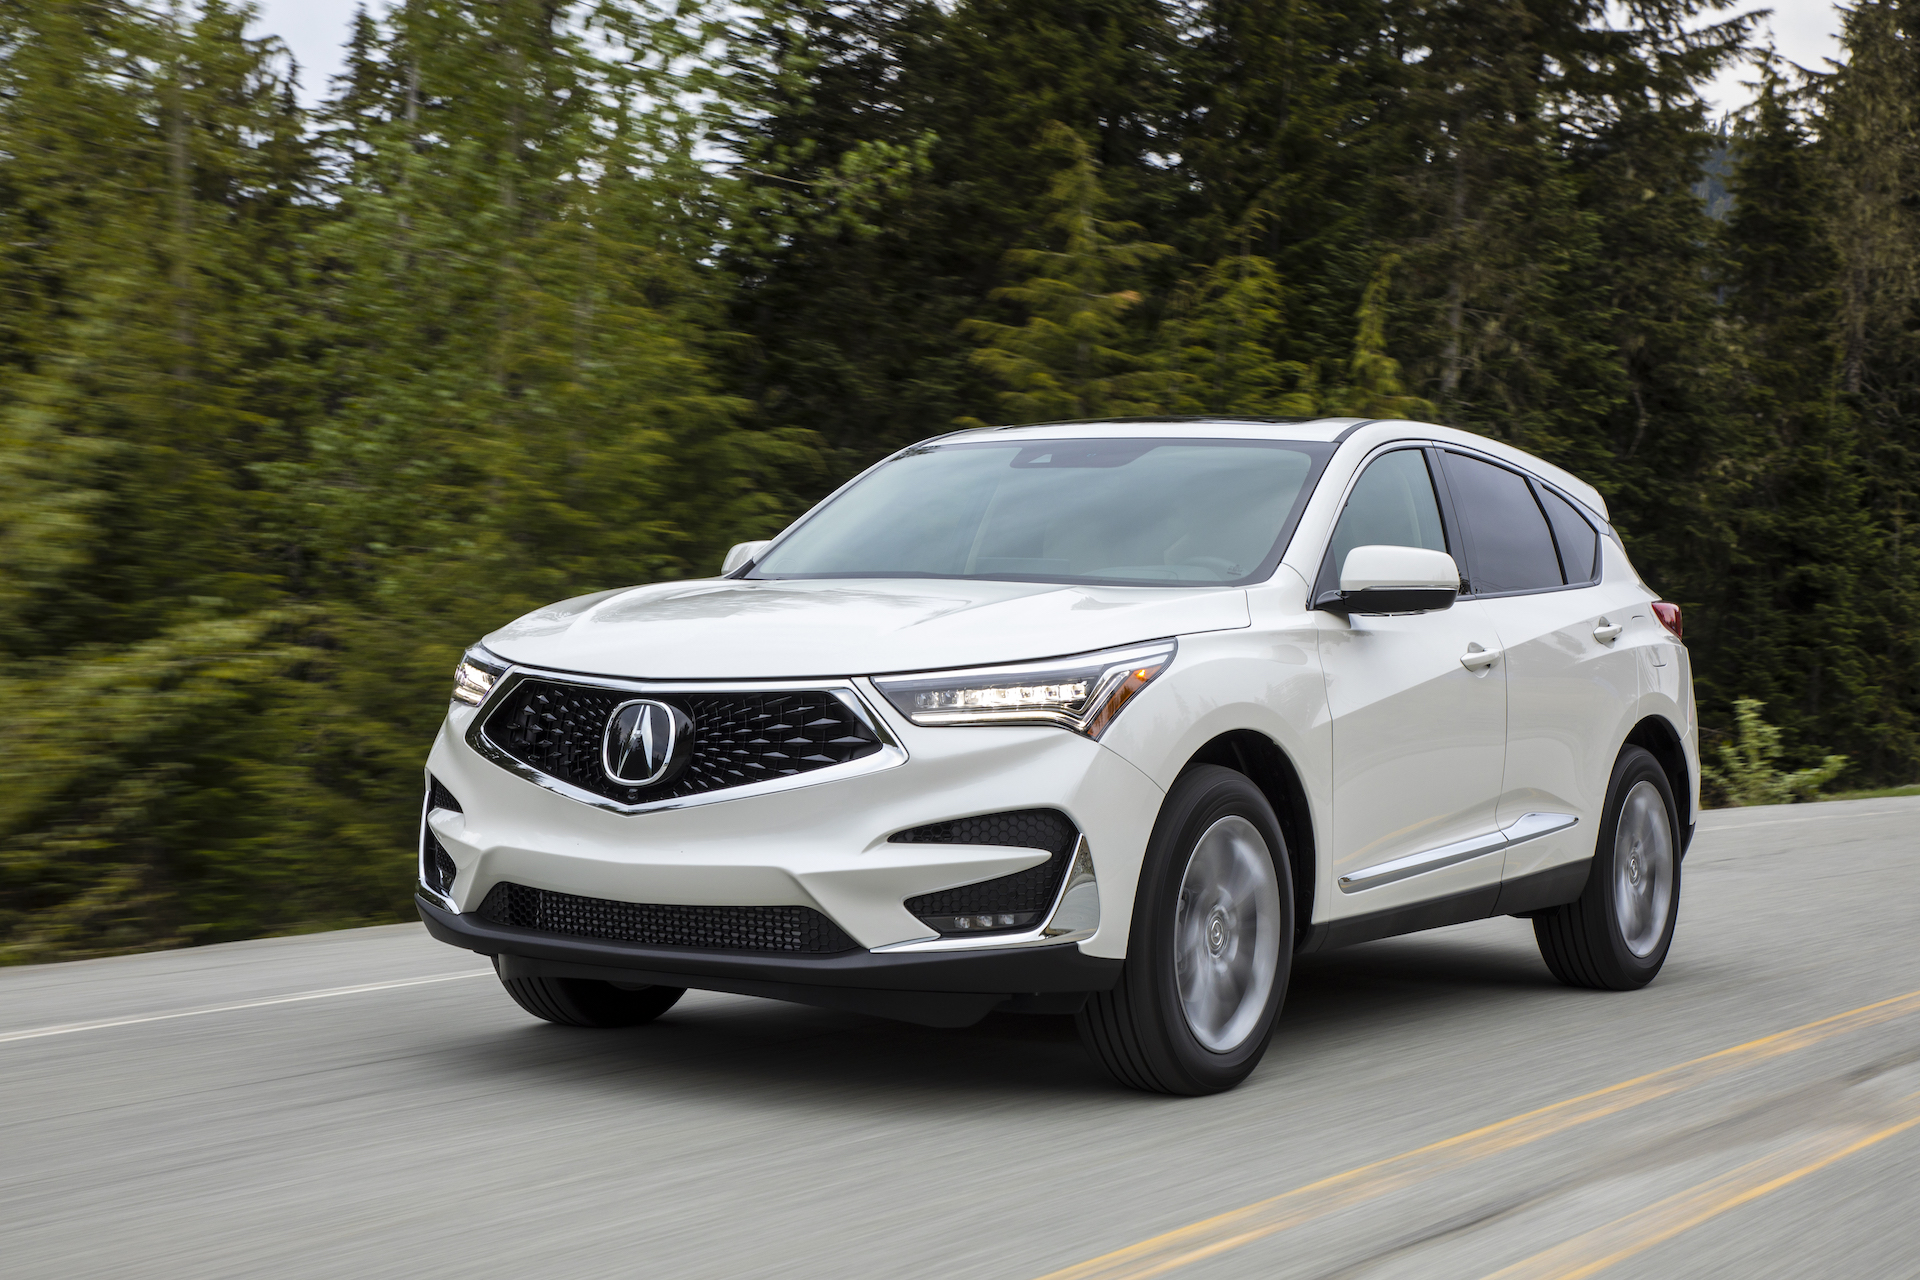 technology by and rdx at david awd review colman with news acura reviews car